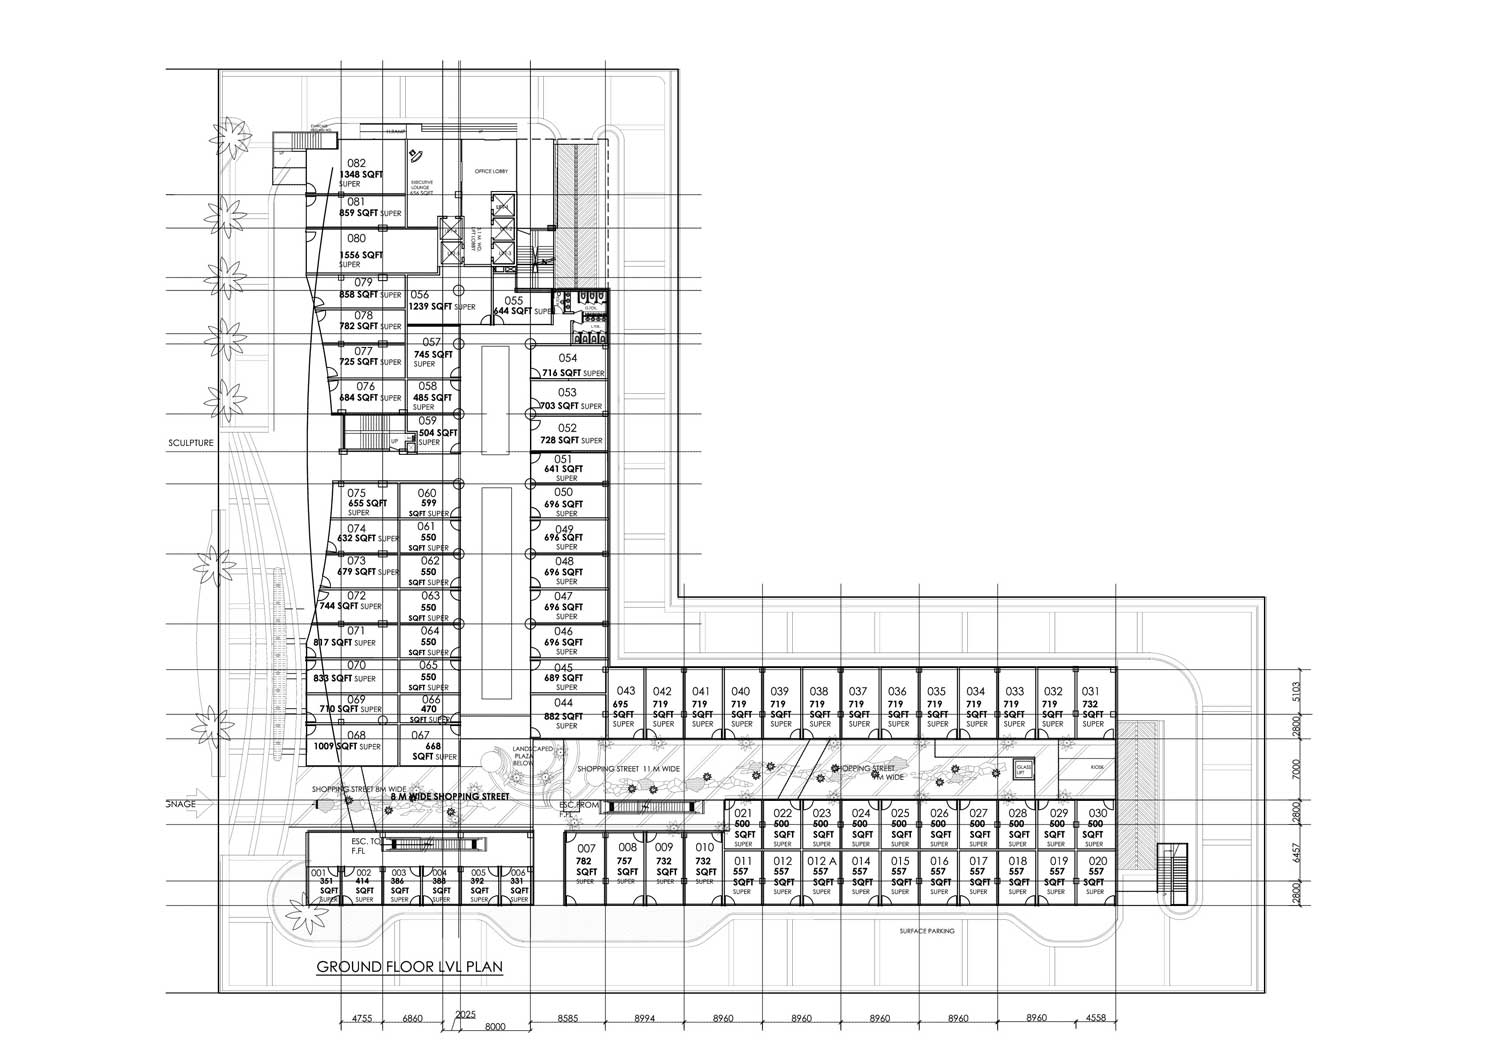 Spaze Corporate Park Ground Floor Plan